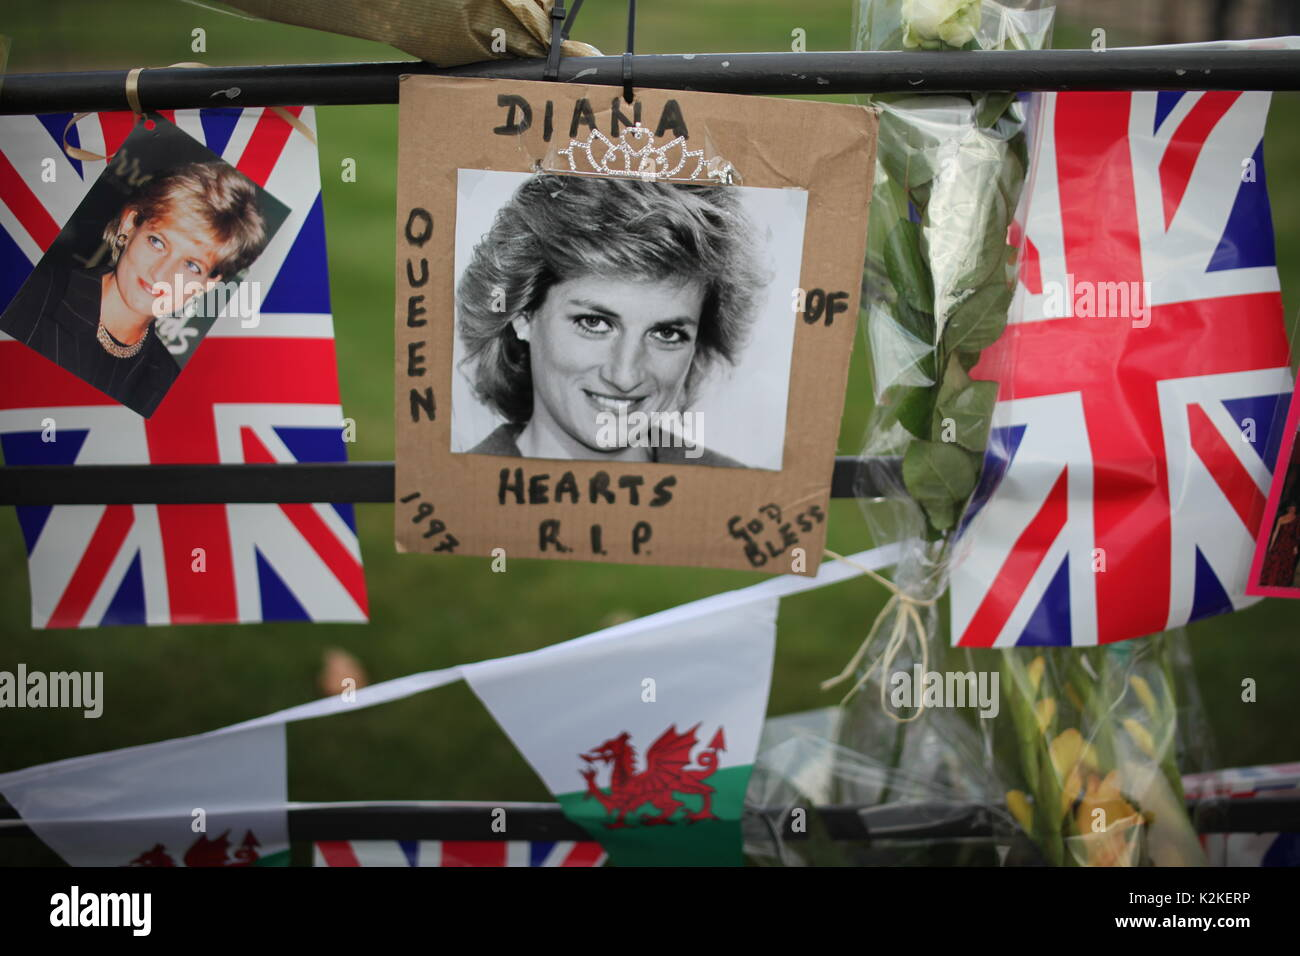 London, UK. 31st Aug, 2017. People pay tribute to Princess Diana at Kensington Palace after 20 years of her death, - Stock Image